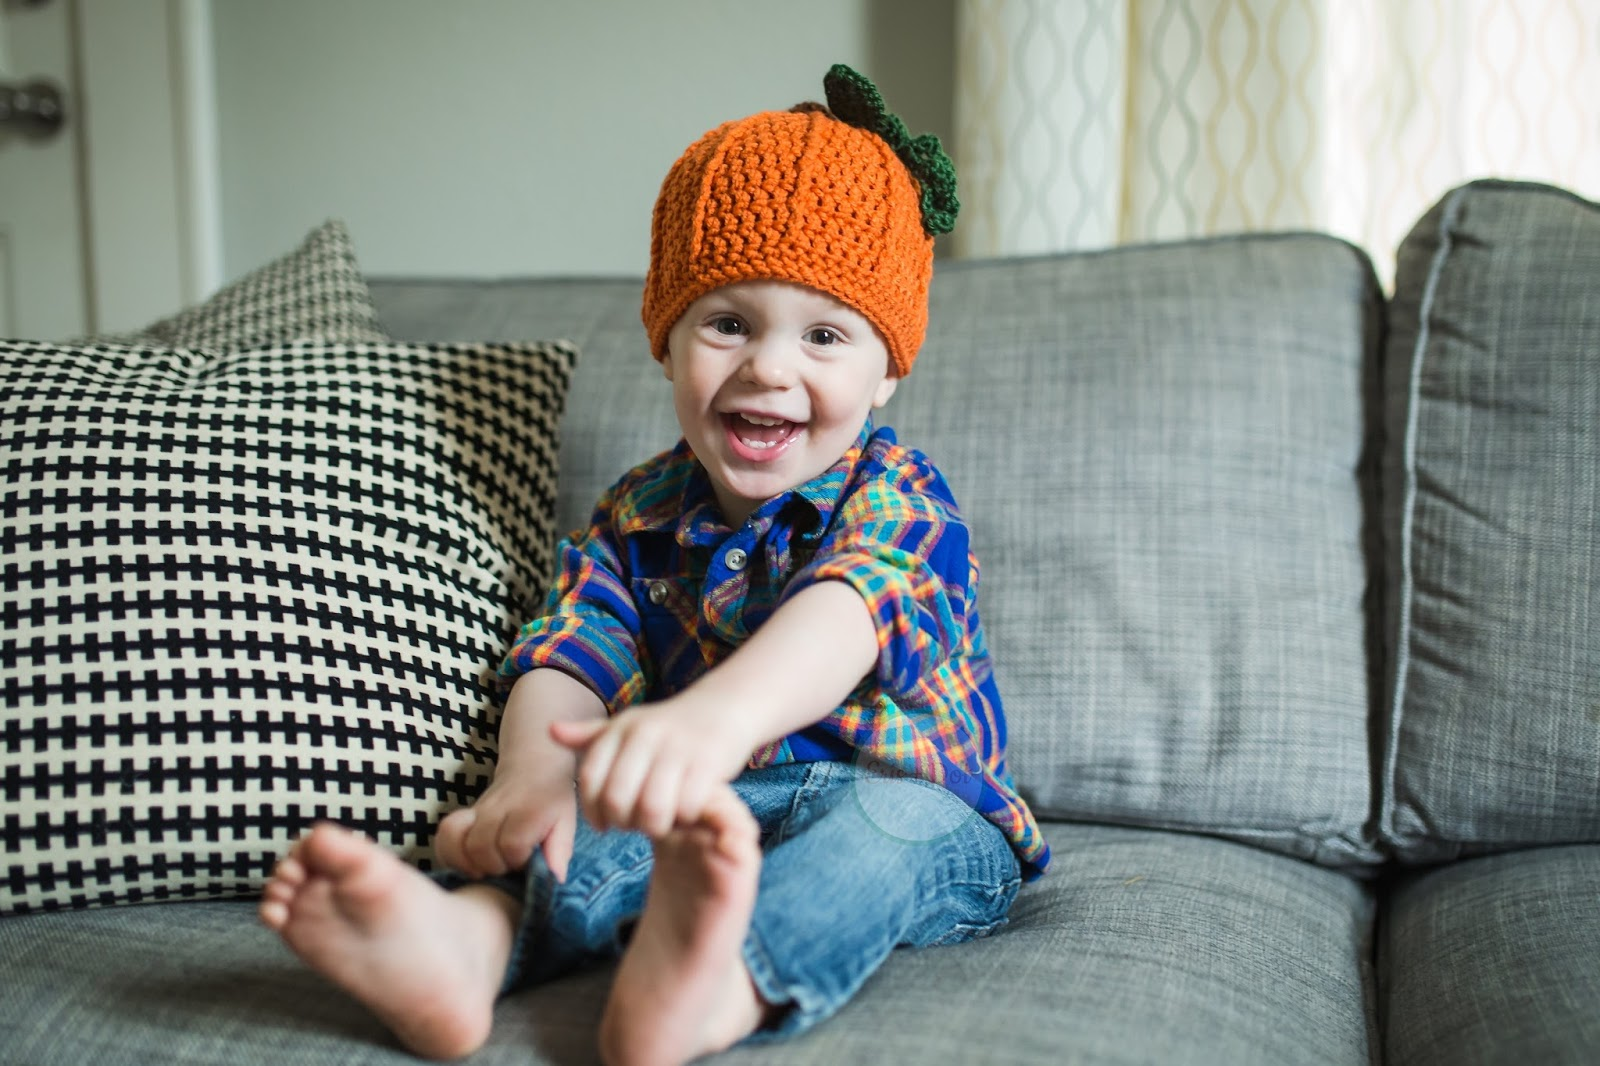 Children's Crochet Pumpkin Hat, Crochet Beanie, Baby Pumpkin Hat, Pumpkin Beanie, Infant, Toddler, Halloween, Costume, Fall, Photo Prop, Girl, Boy